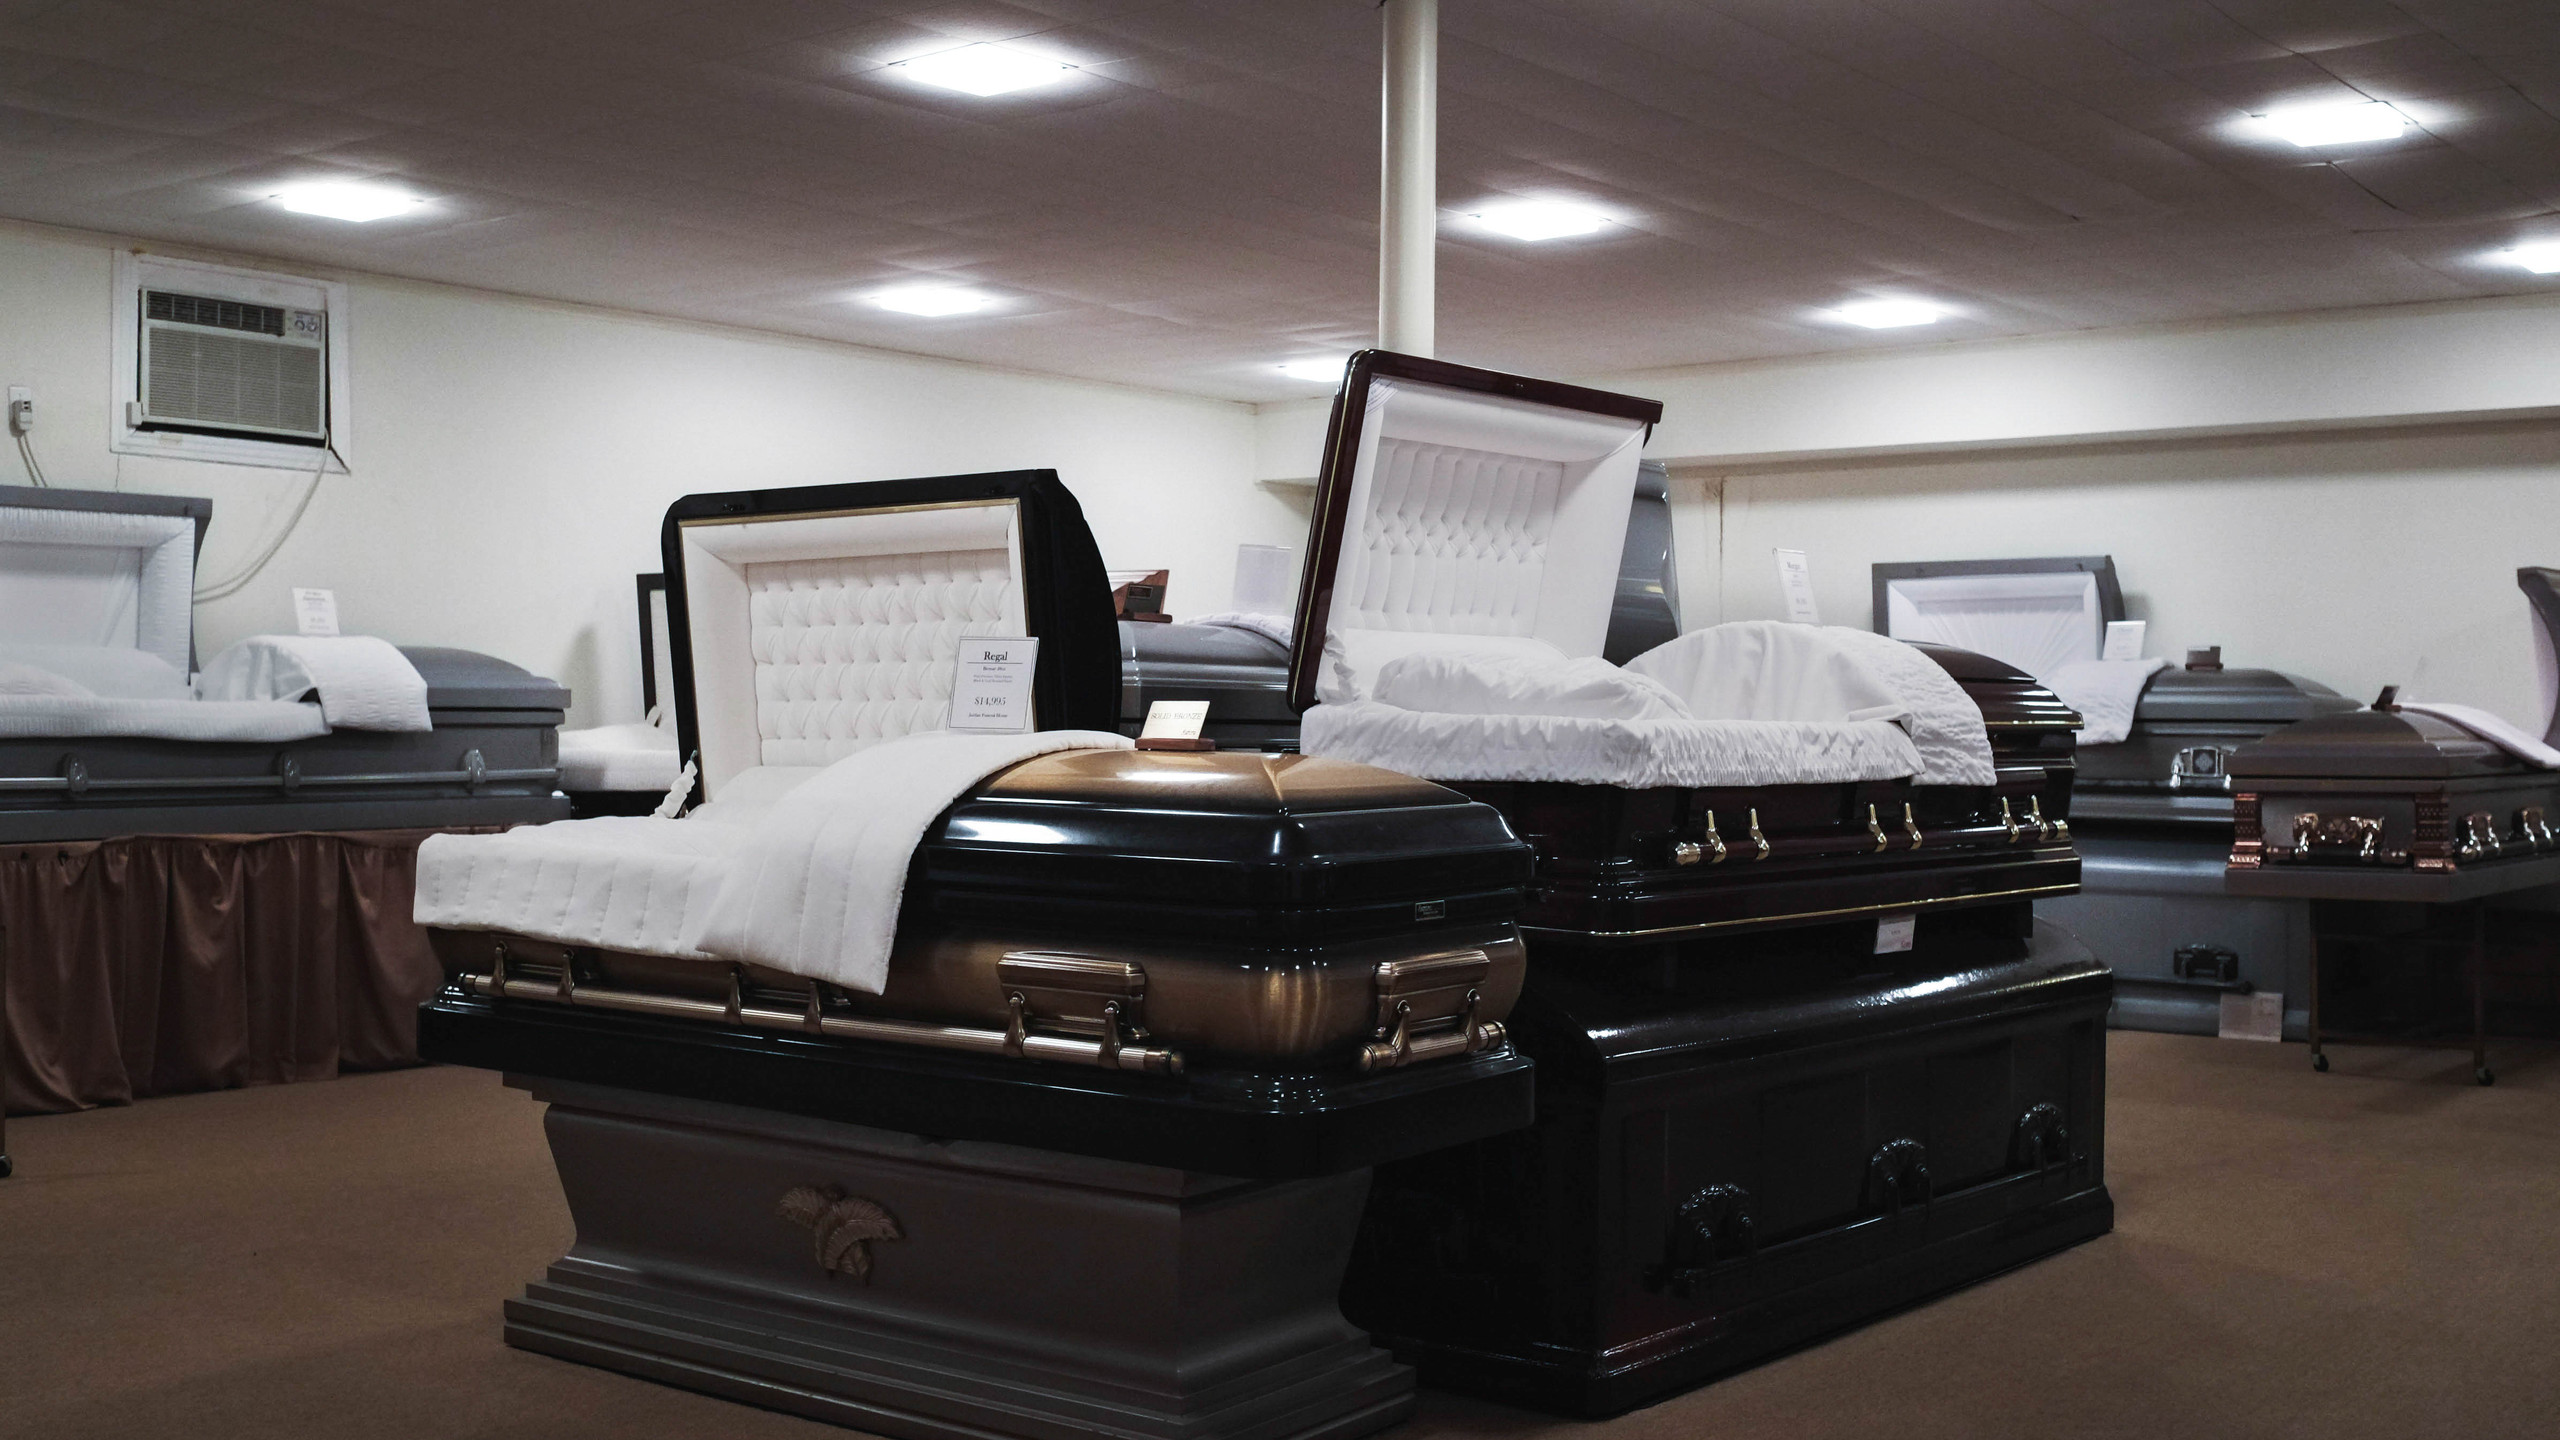 Caskets are displayed in a showroom for the decedents' families to purchase.